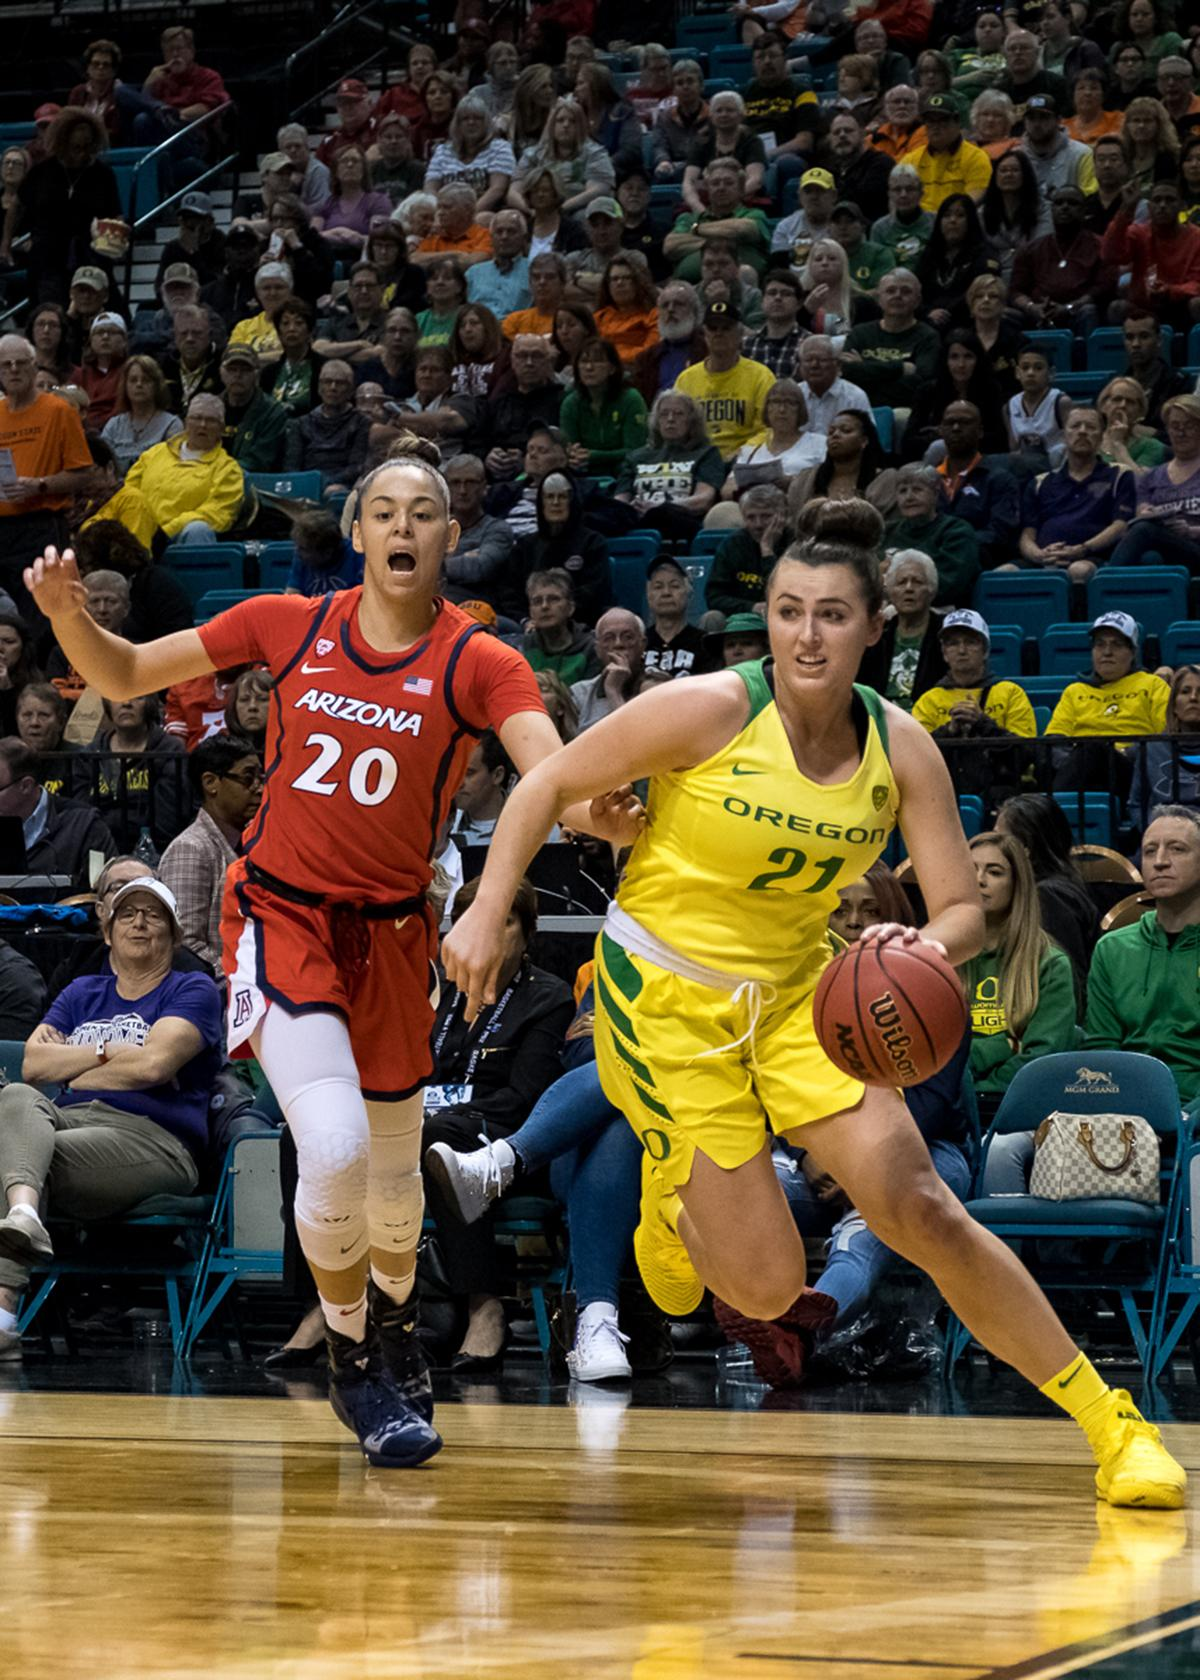 Ducks Erin Boley (#21) drives past Arizona's Dominique McBryde (#20) during Friday's game at MGM Arena. The number one seeded Oregon Ducks defeated the 8th seeded Arizona Wildcats 77-63 today in the quarterfinals of the Pac-12 Tournament in Las Vegas, Nevada. Two ducks logged double doubles with Ruthy Hebard leading the Ducks in scoring with 21 points and 10 rebounds while Sabrina Ionescu ended the game with 18 points, 13 assists and eight rebounds to help the 6th ranked Ducks move on to tomorrows semifinal match against UCLA at MGM Arena. Photo by Jeff Dean